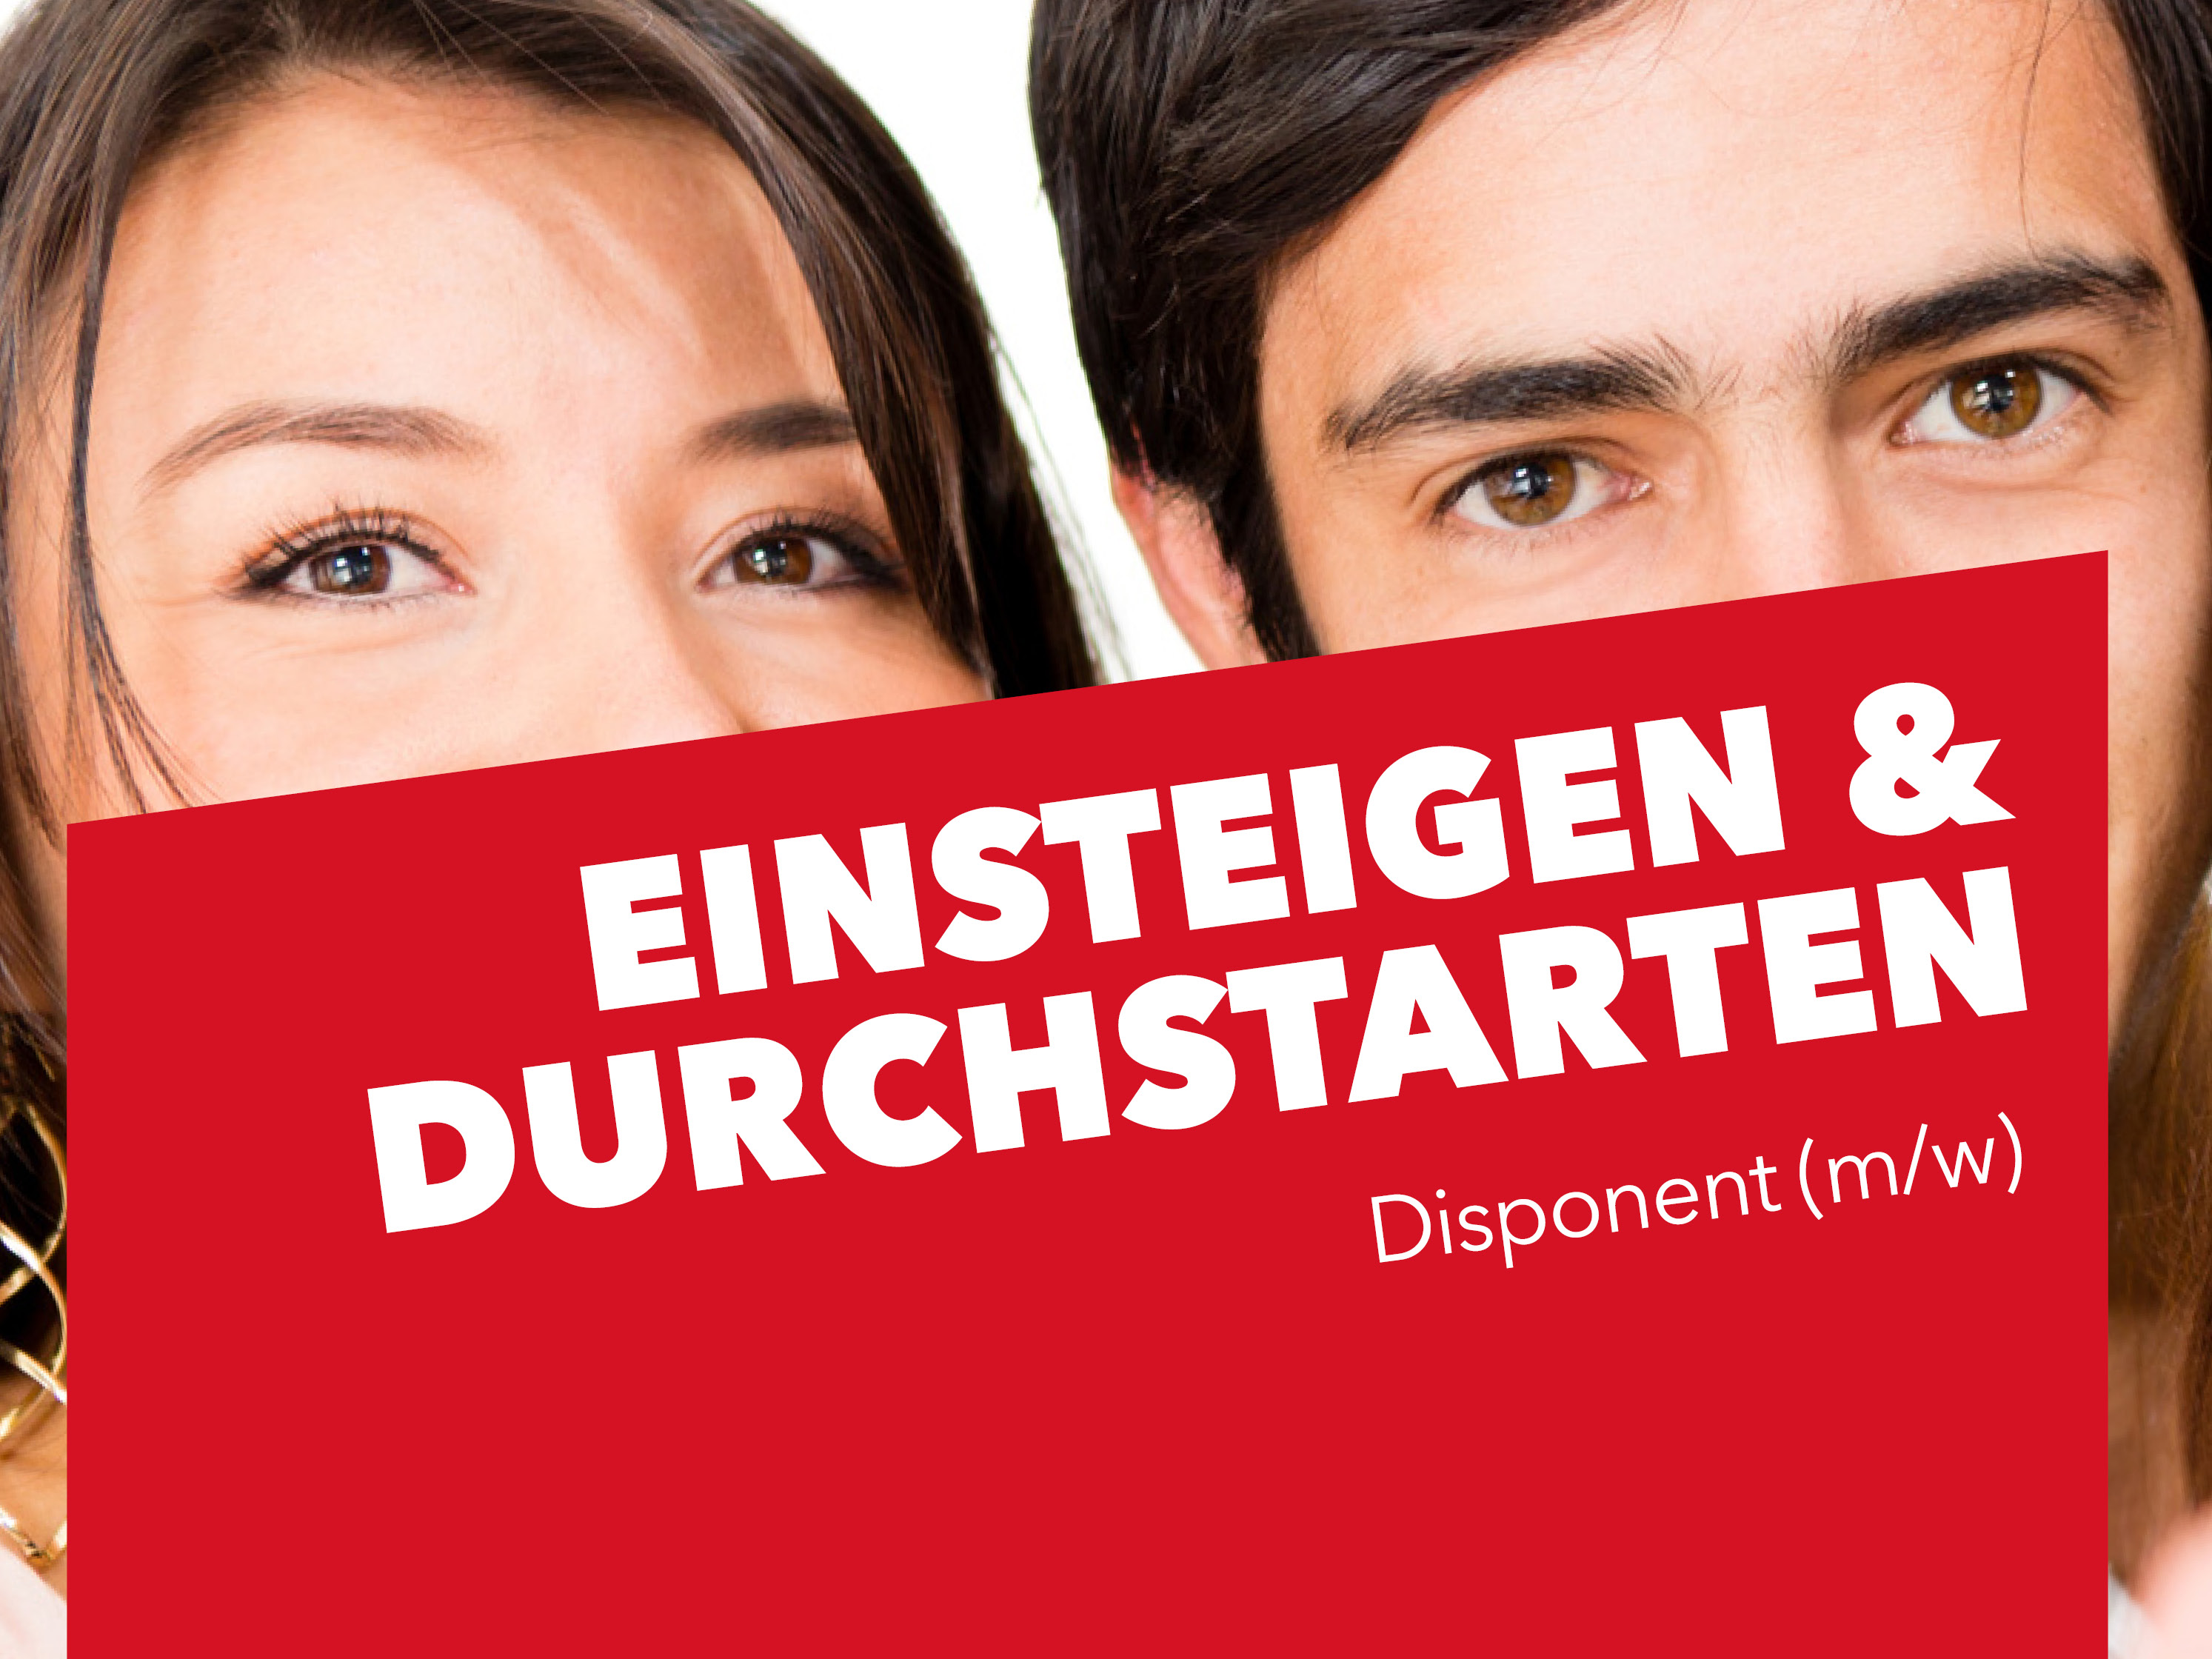 Disponent (m/w) in Kempten